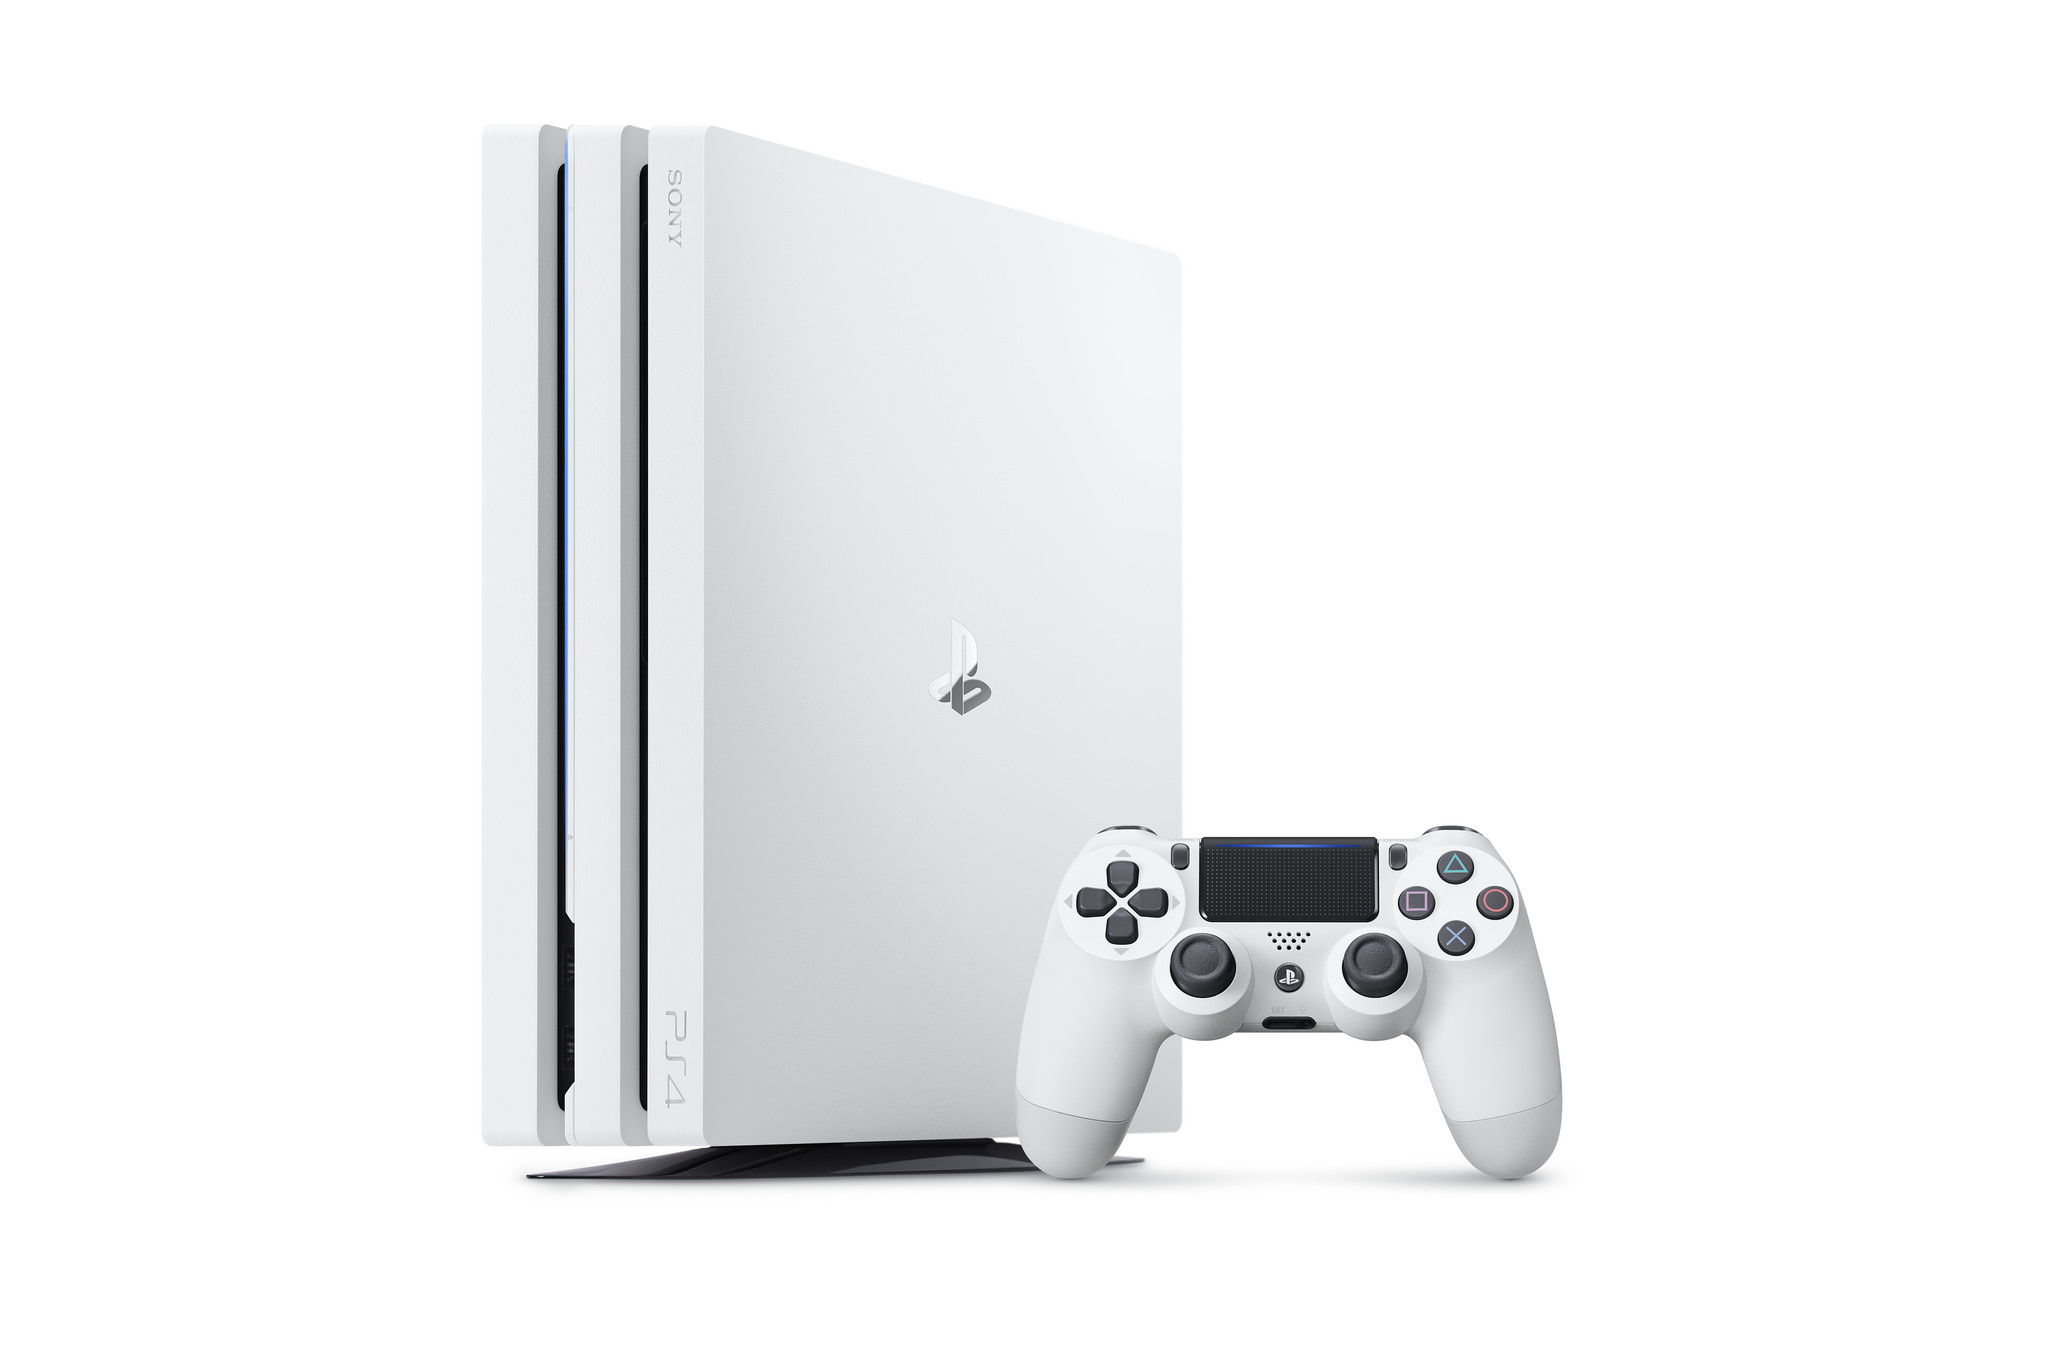 You can now preorder a white PS4 Pro